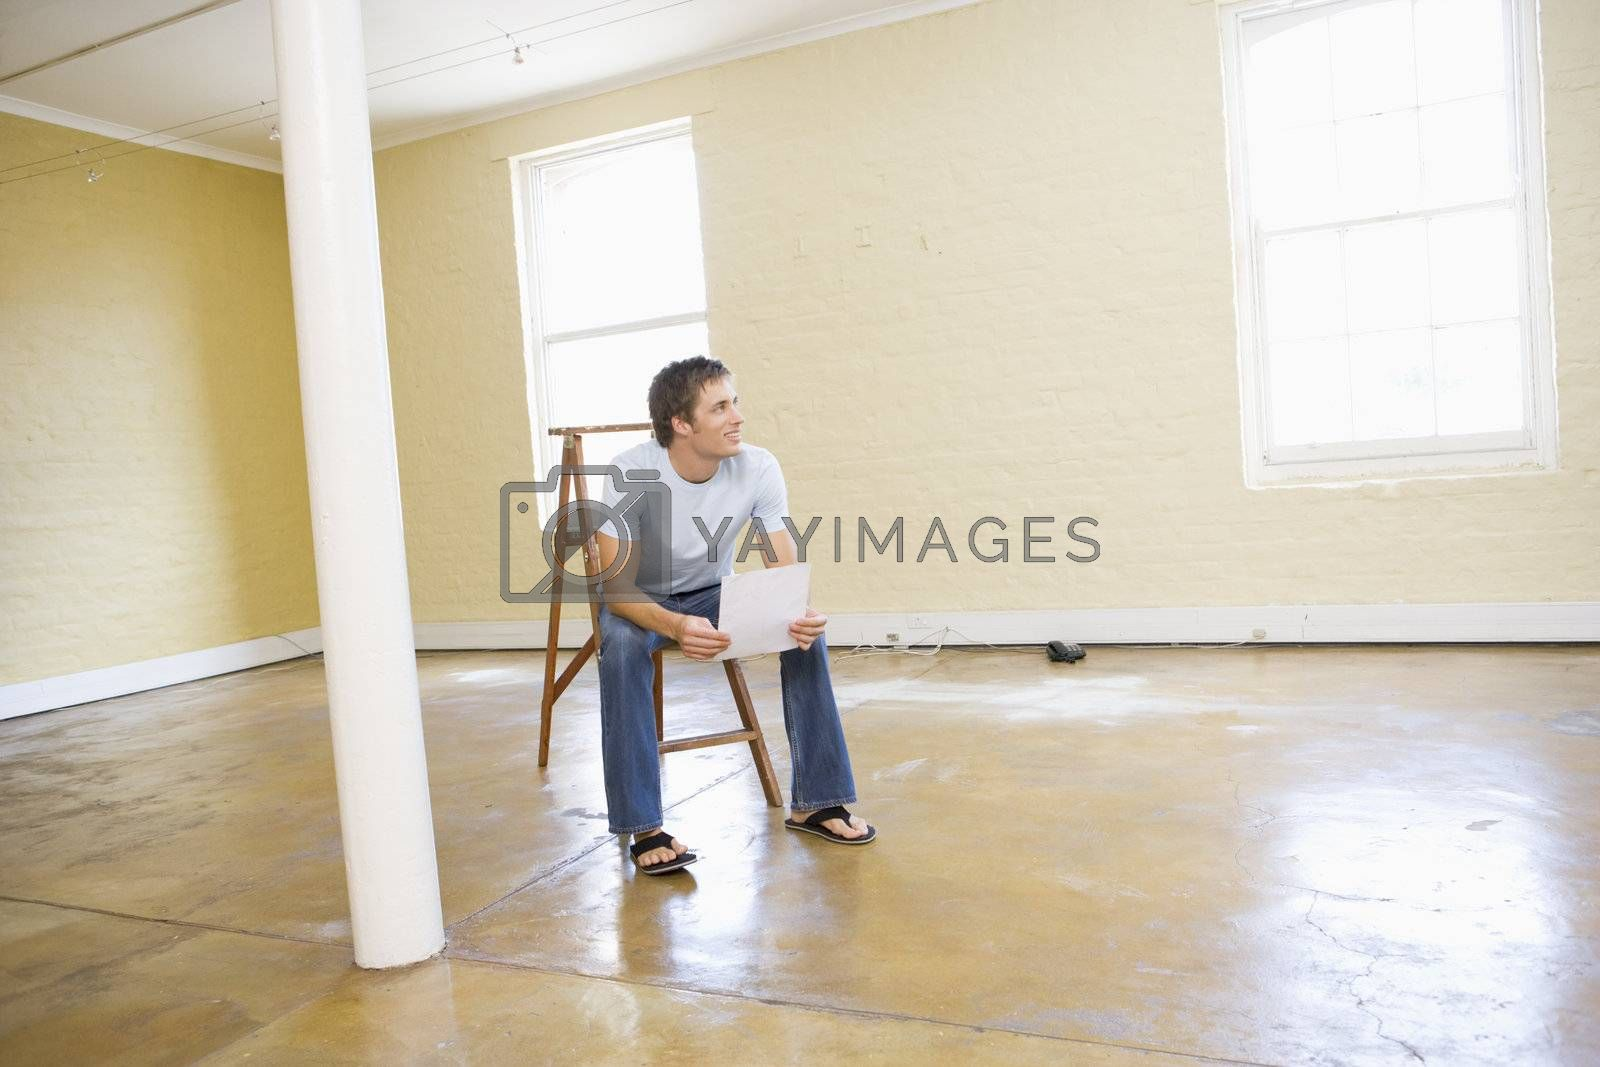 Man sitting on ladder in empty space holding paper smiling by MonkeyBusiness